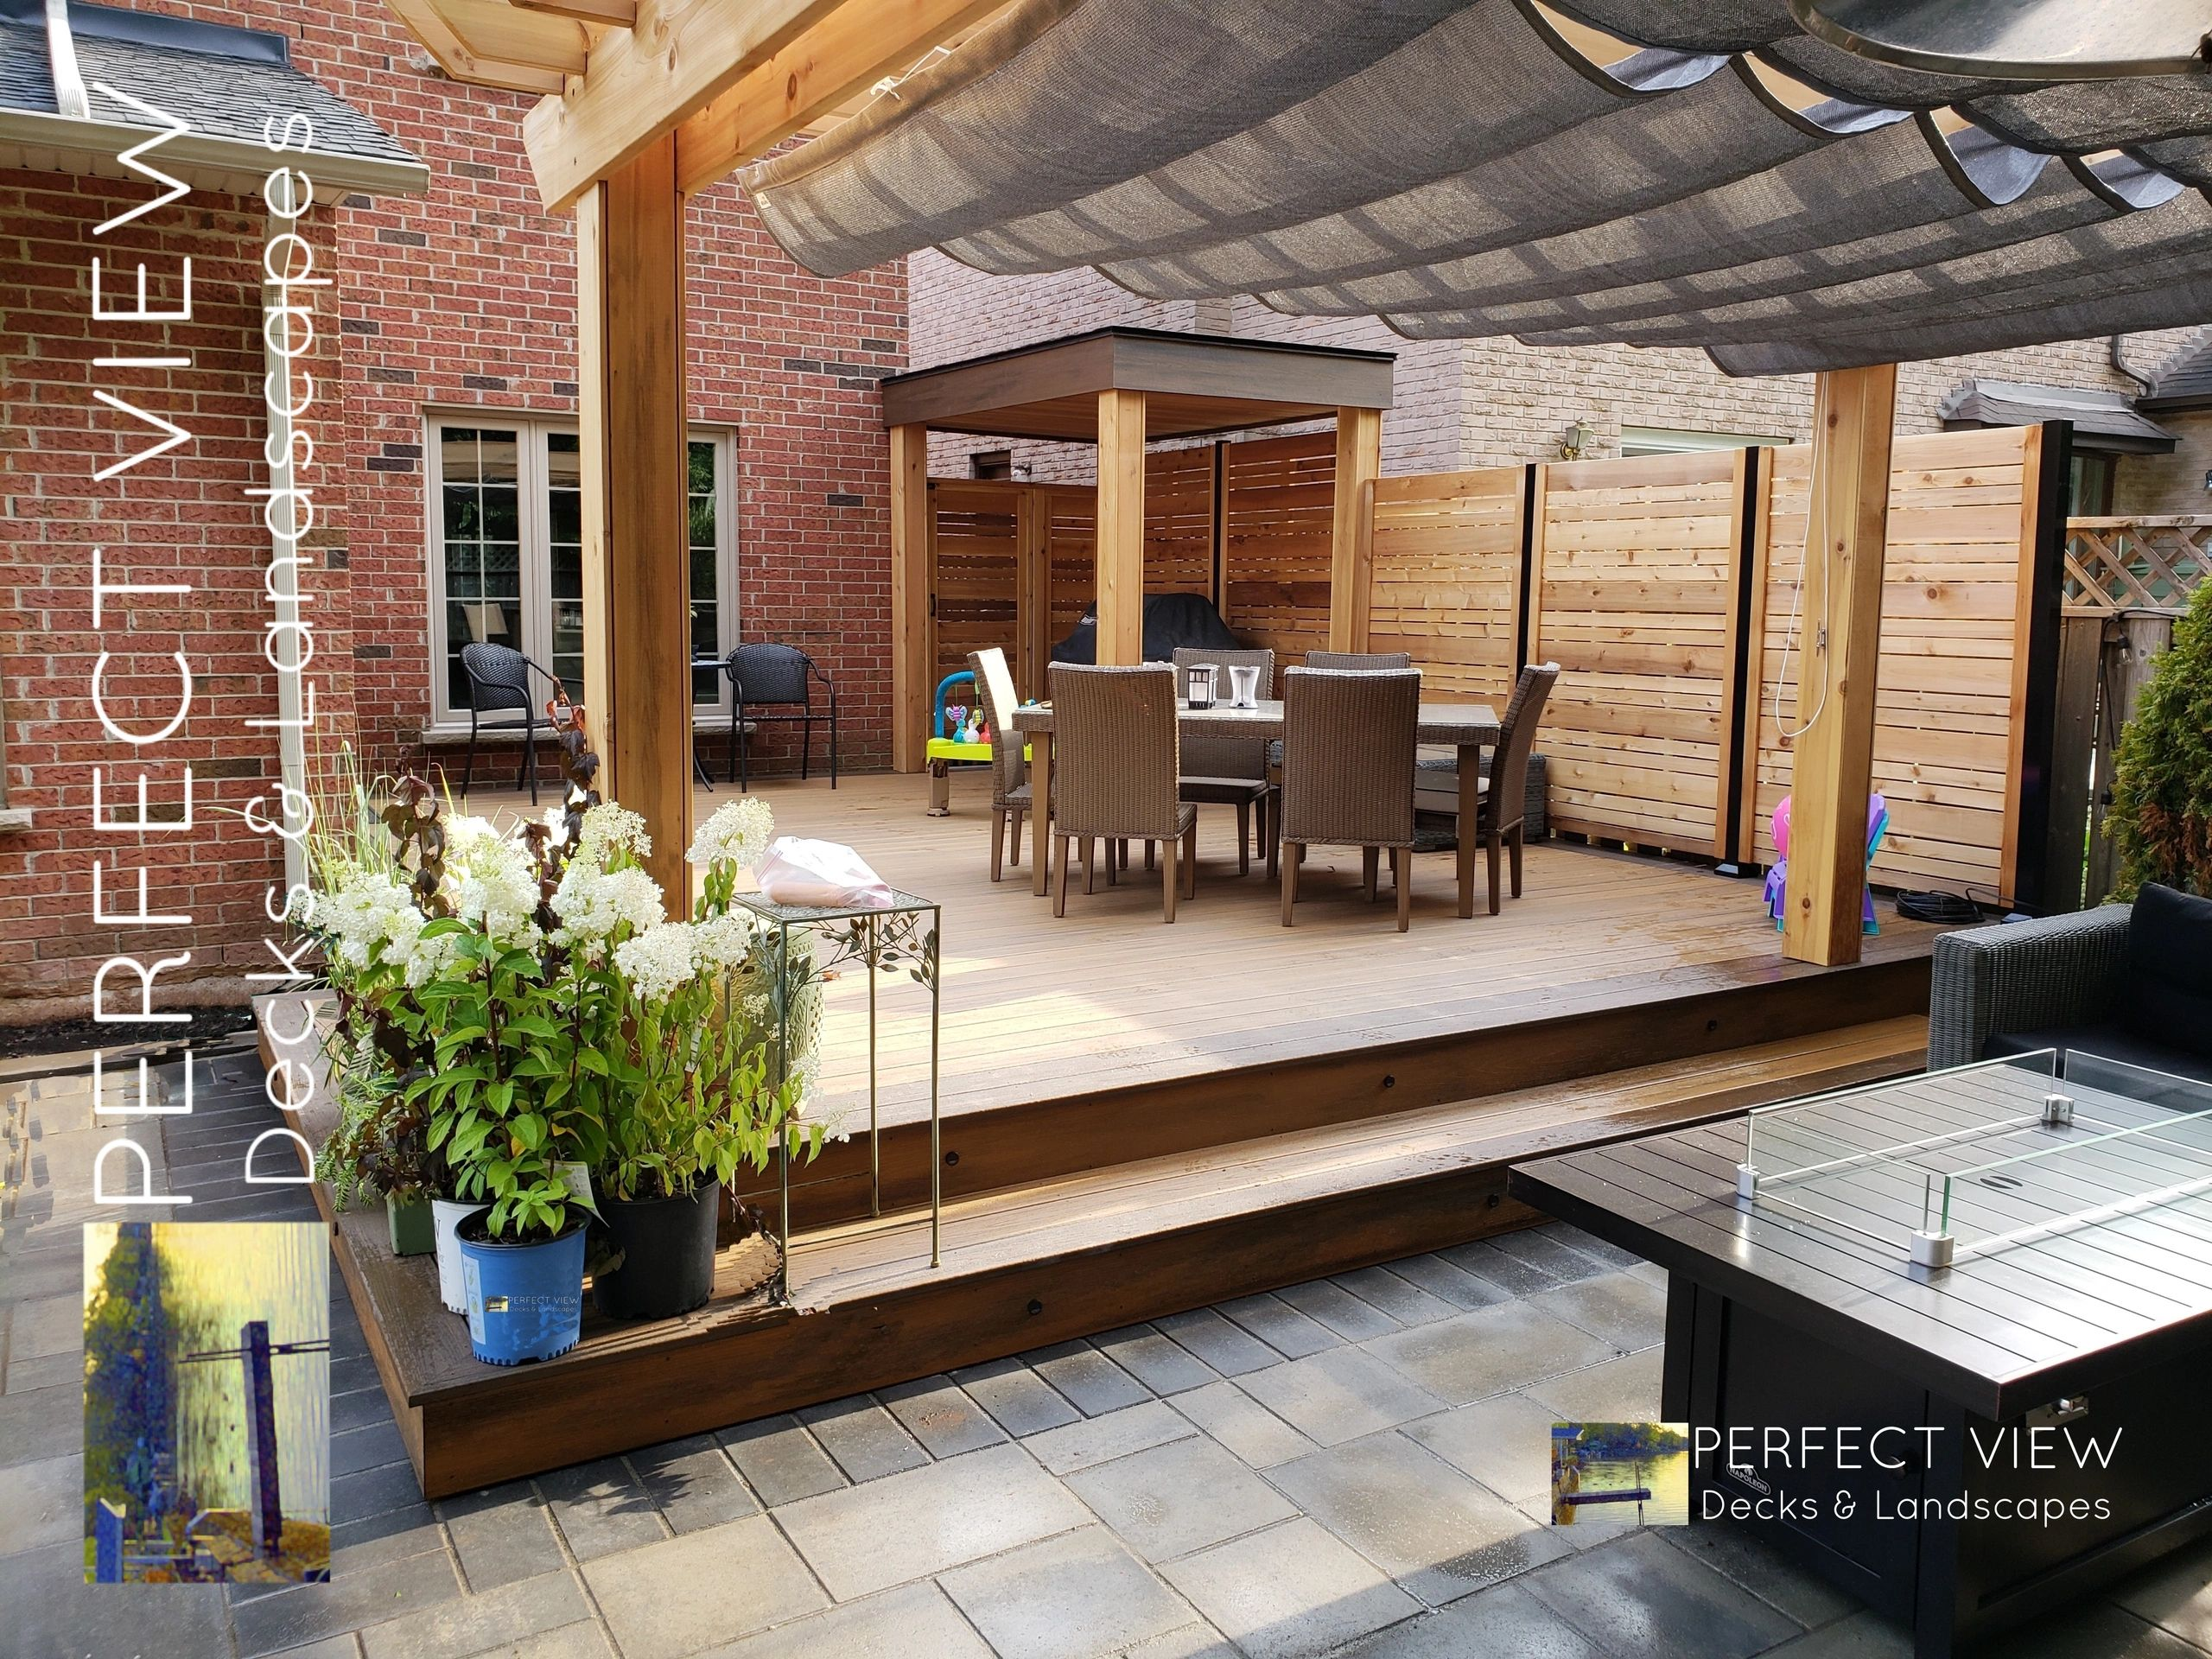 A deck and Landscaping project in Oakville, Ontario. Decking material from Mississauga & Burlington